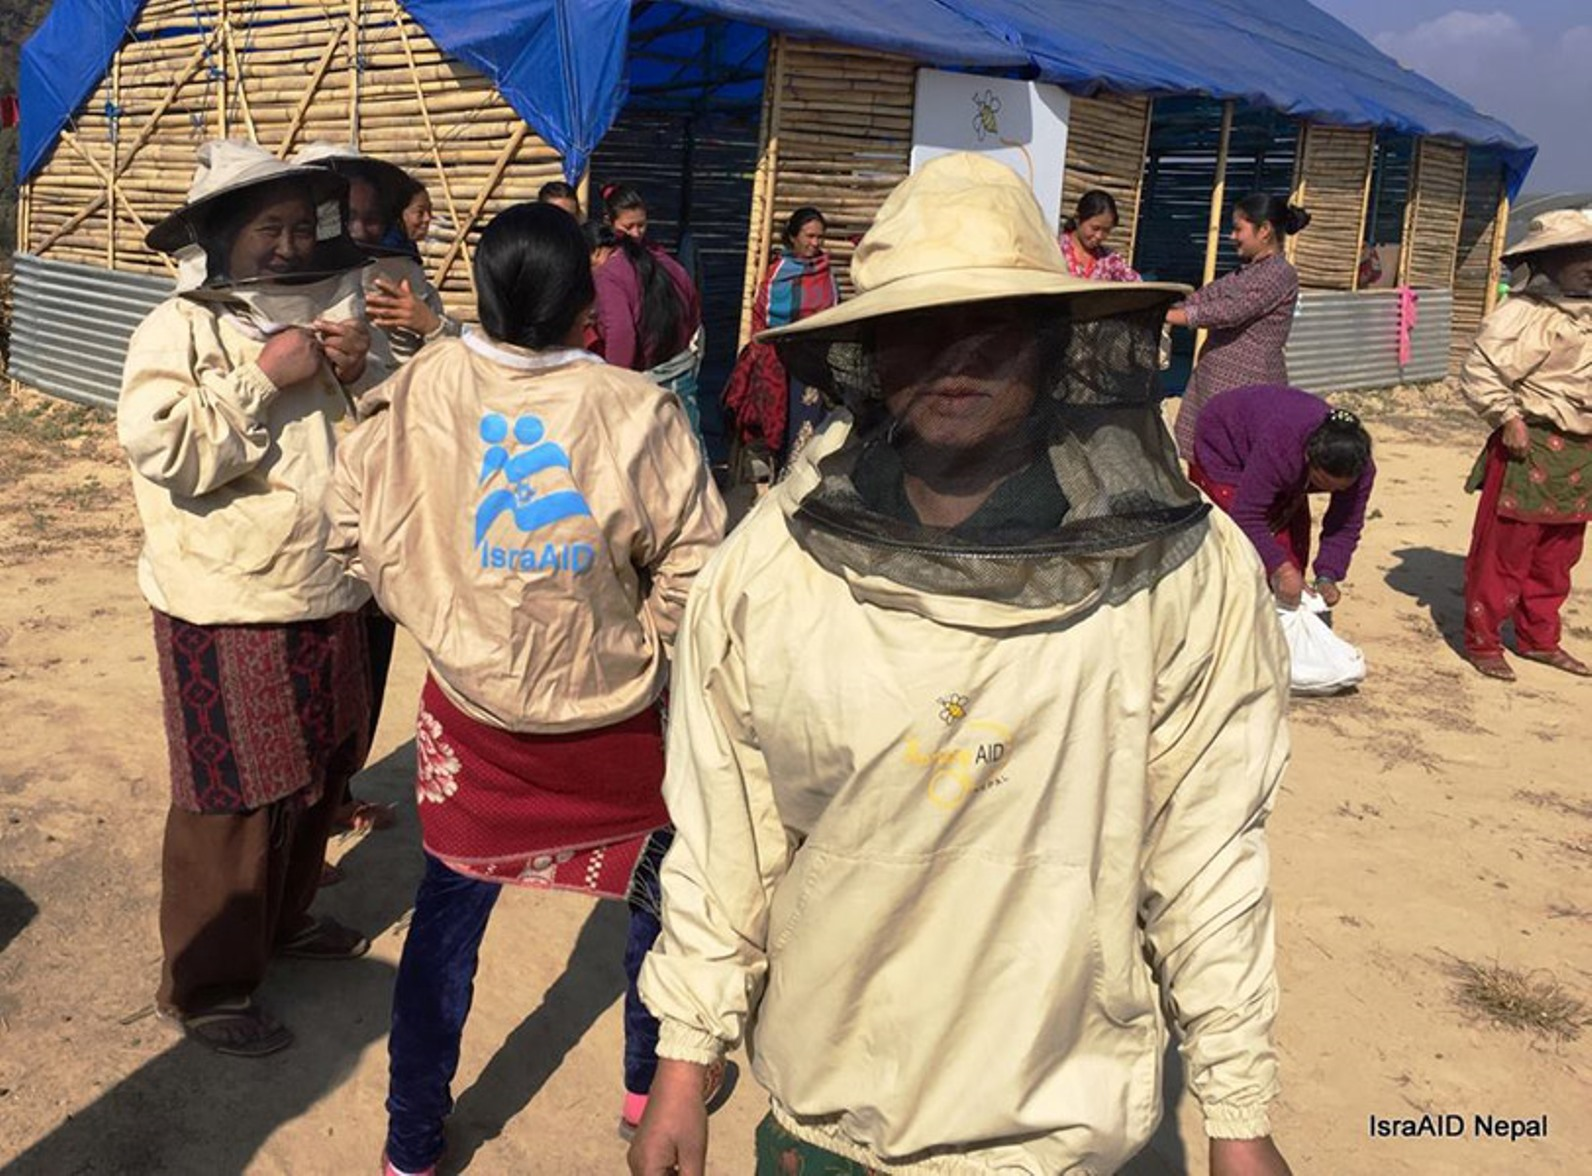 IsraAID's HoneyAID project equips and trains Nepalese women to be beekeepers. Photo courtesy of IsraAID